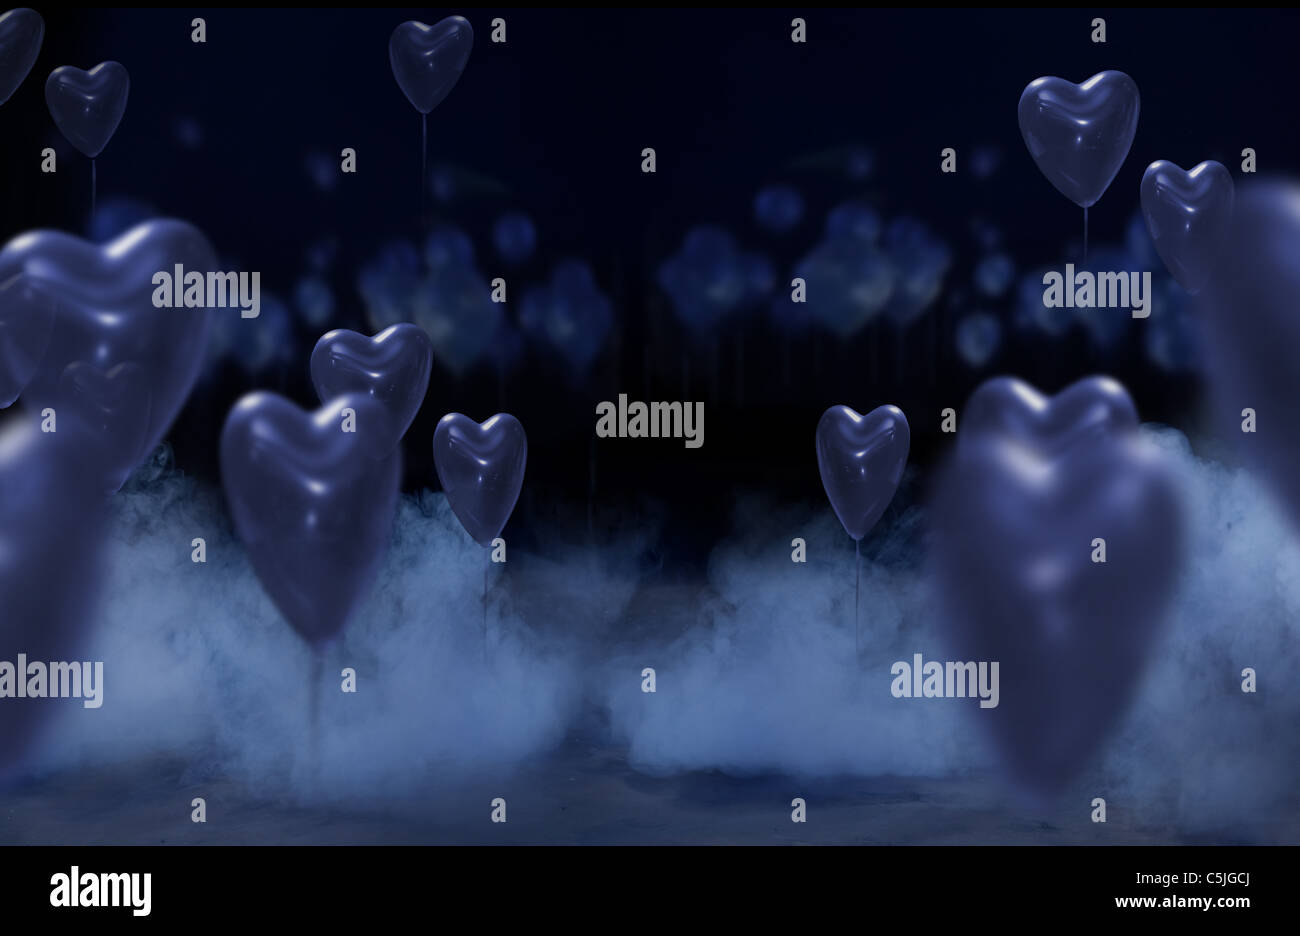 Studio background with hearts - Stock Image